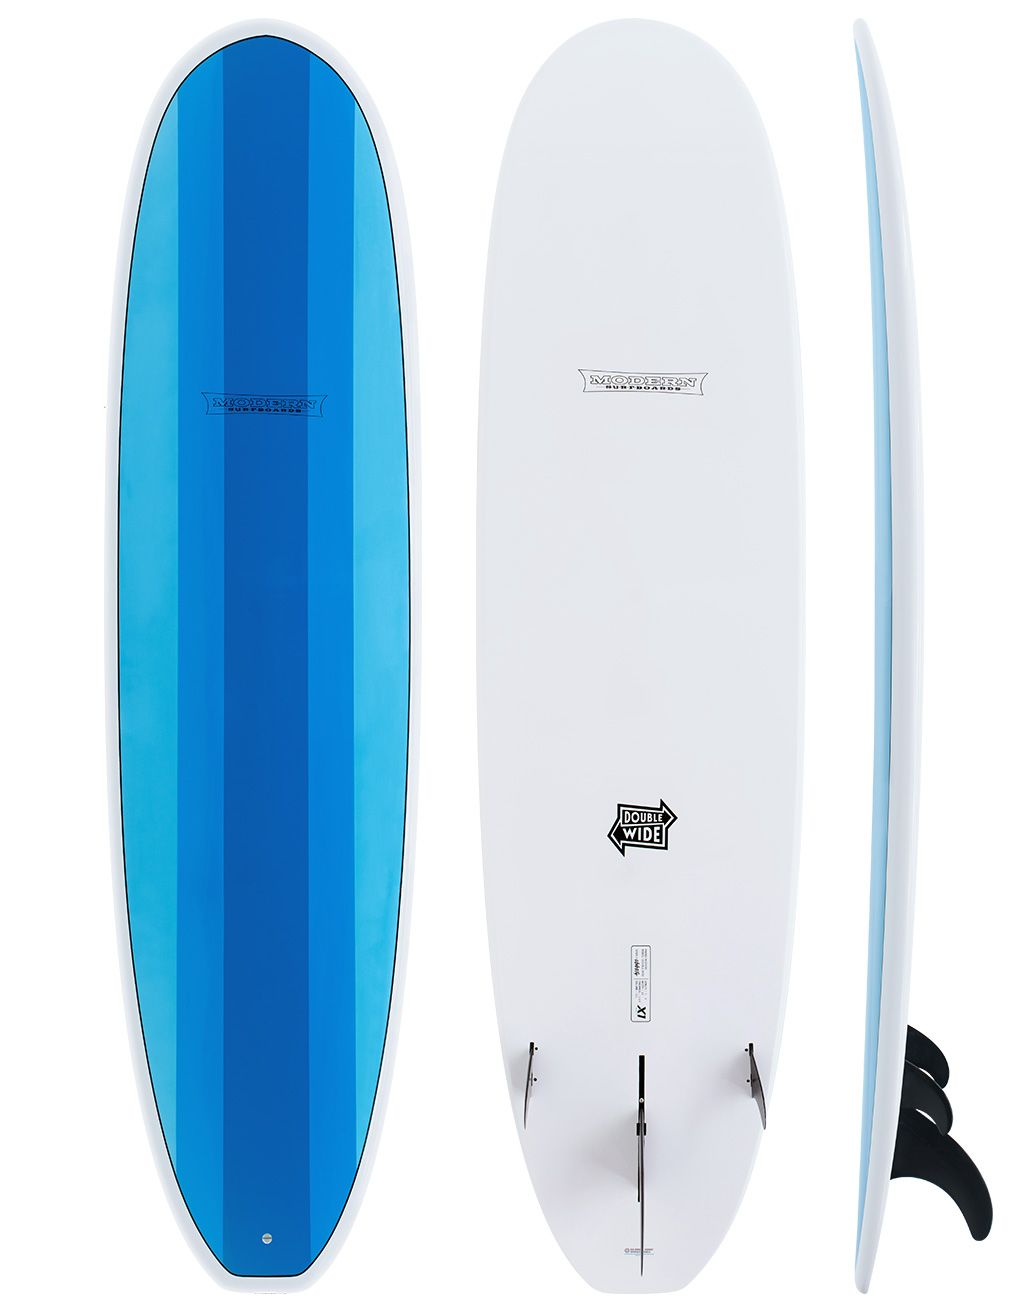 MODERN SURFBOARDS DOUBLE WIDE - X1 CONSTRUCTION